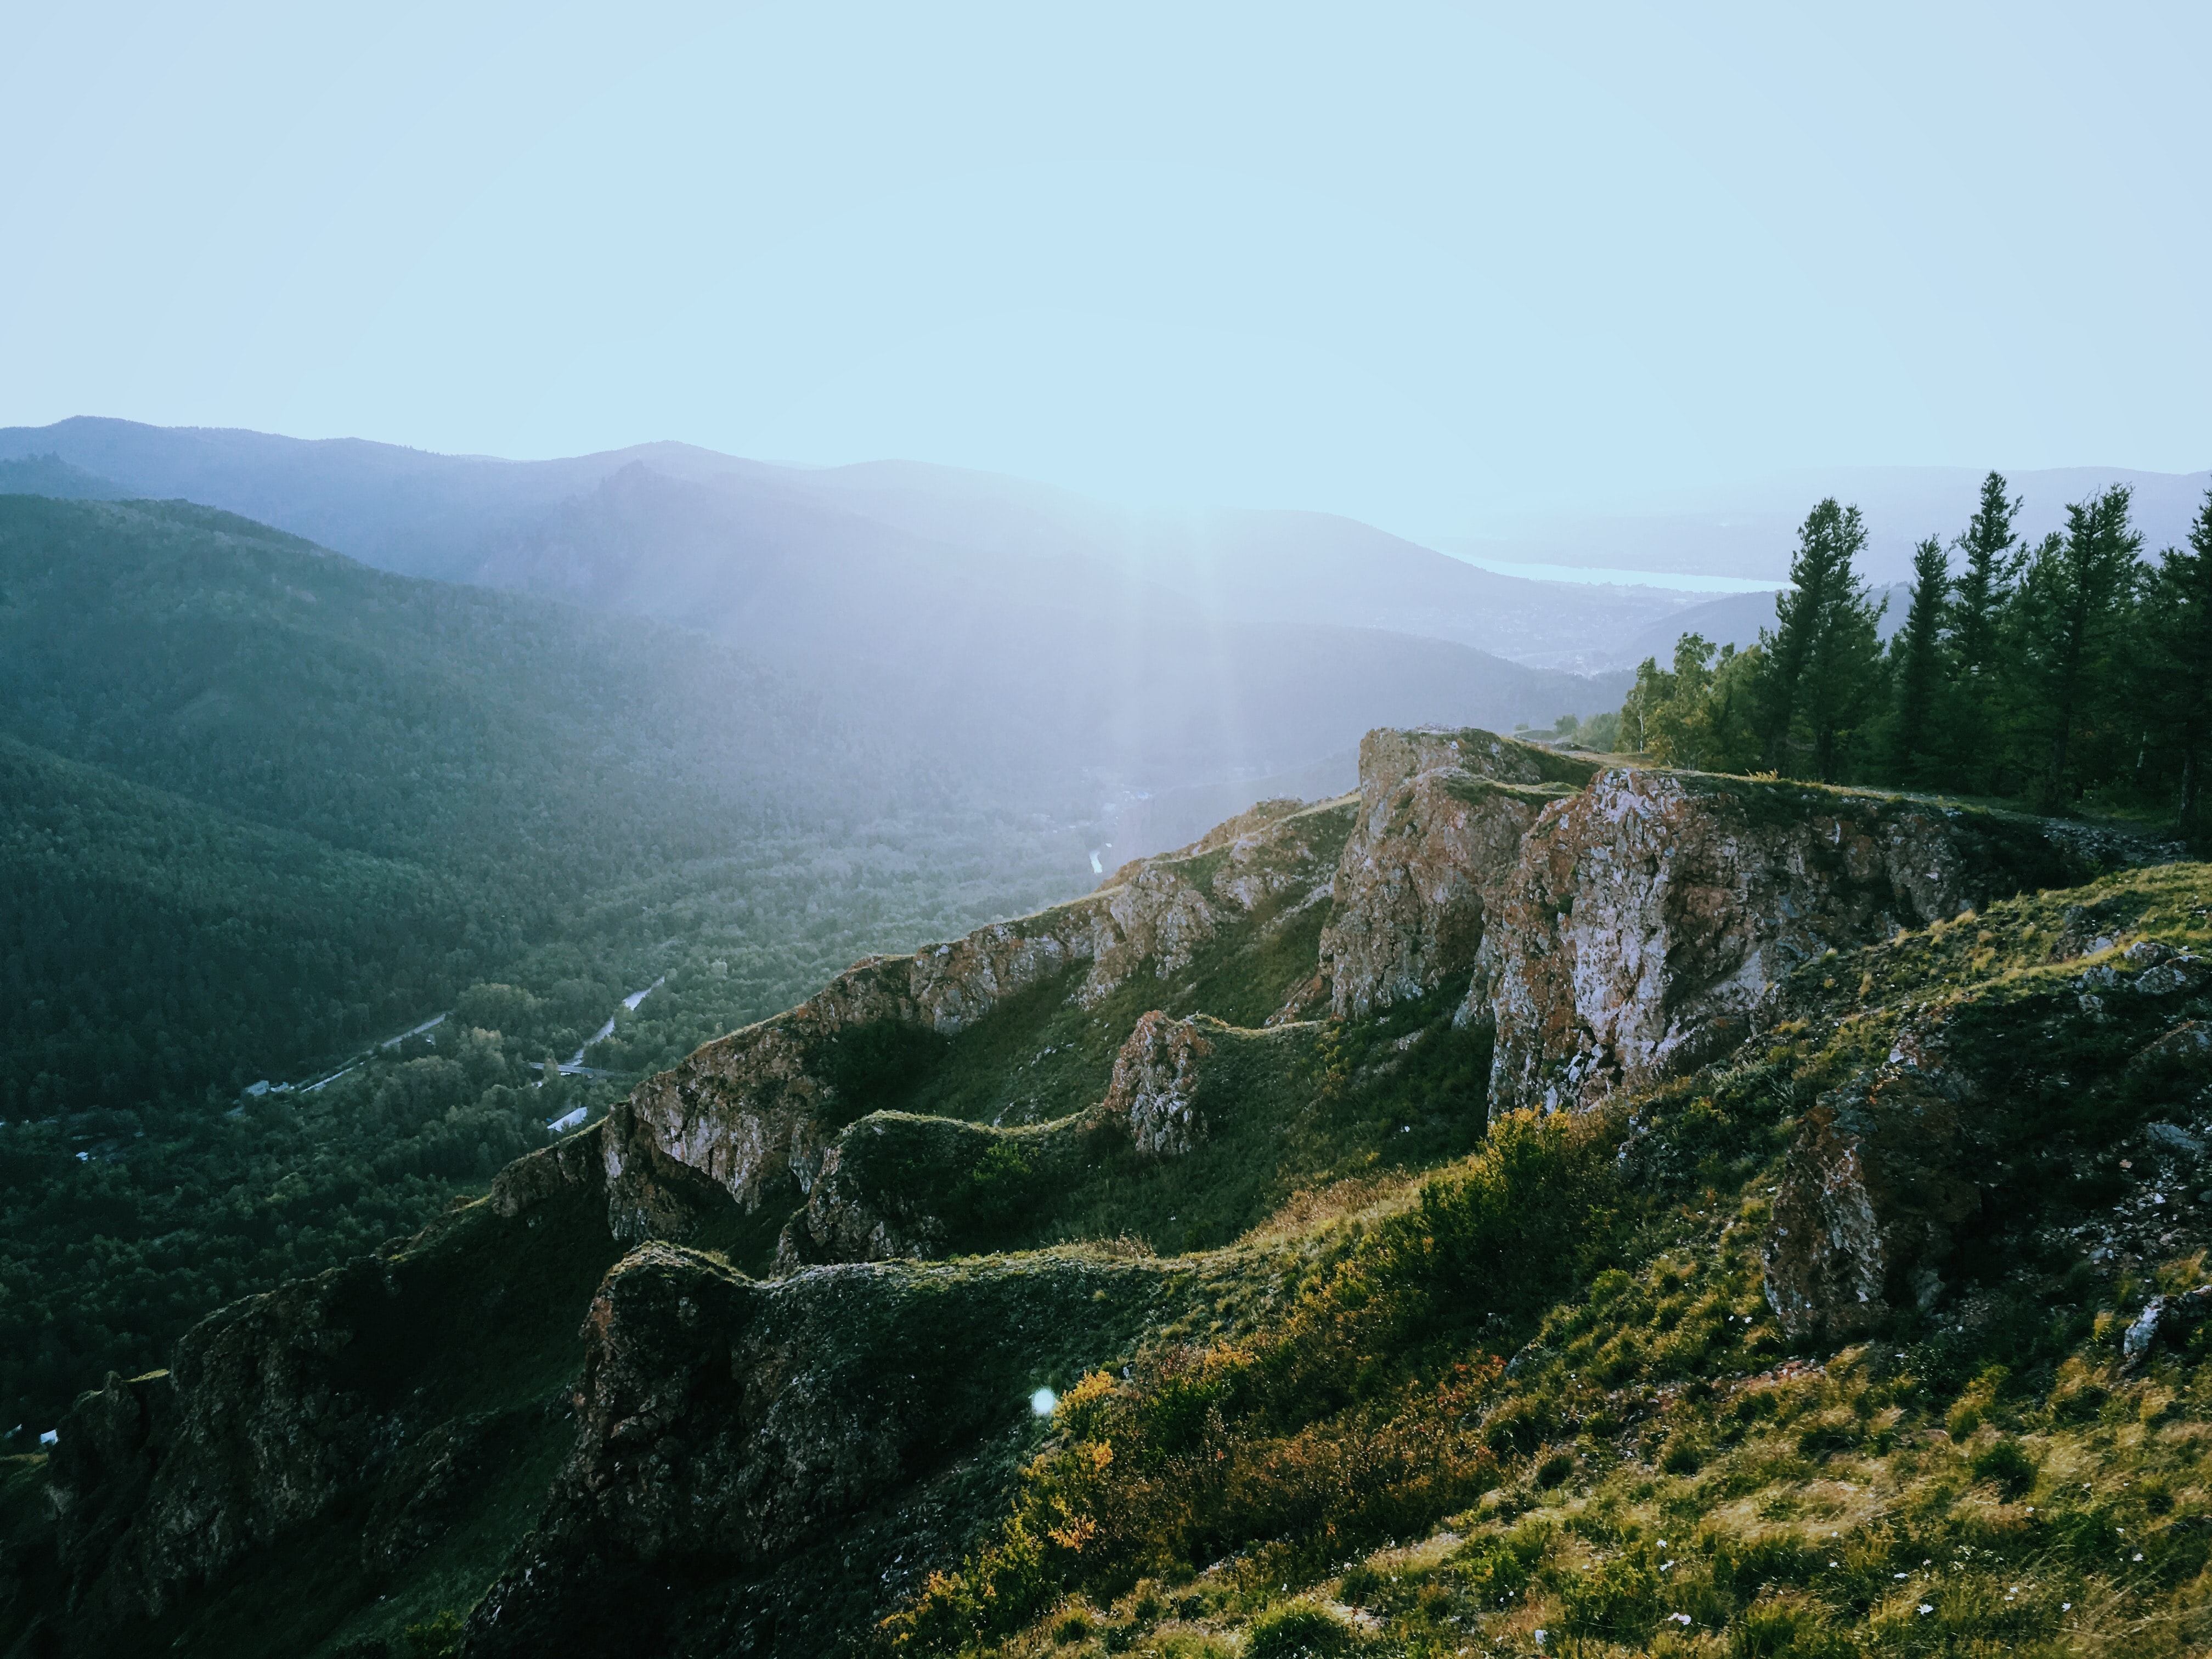 A rocky slope over a green valley in Russia